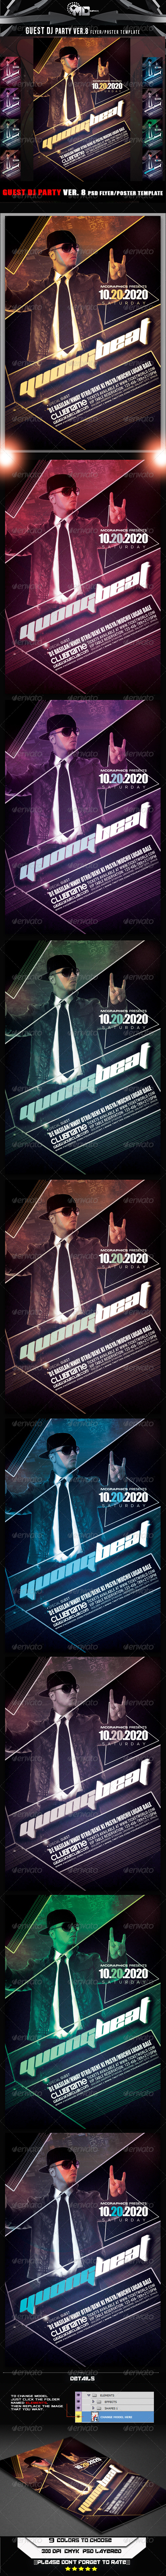 GraphicRiver Guest DJ Party Ver.8 Flyer Poster Template 8340283